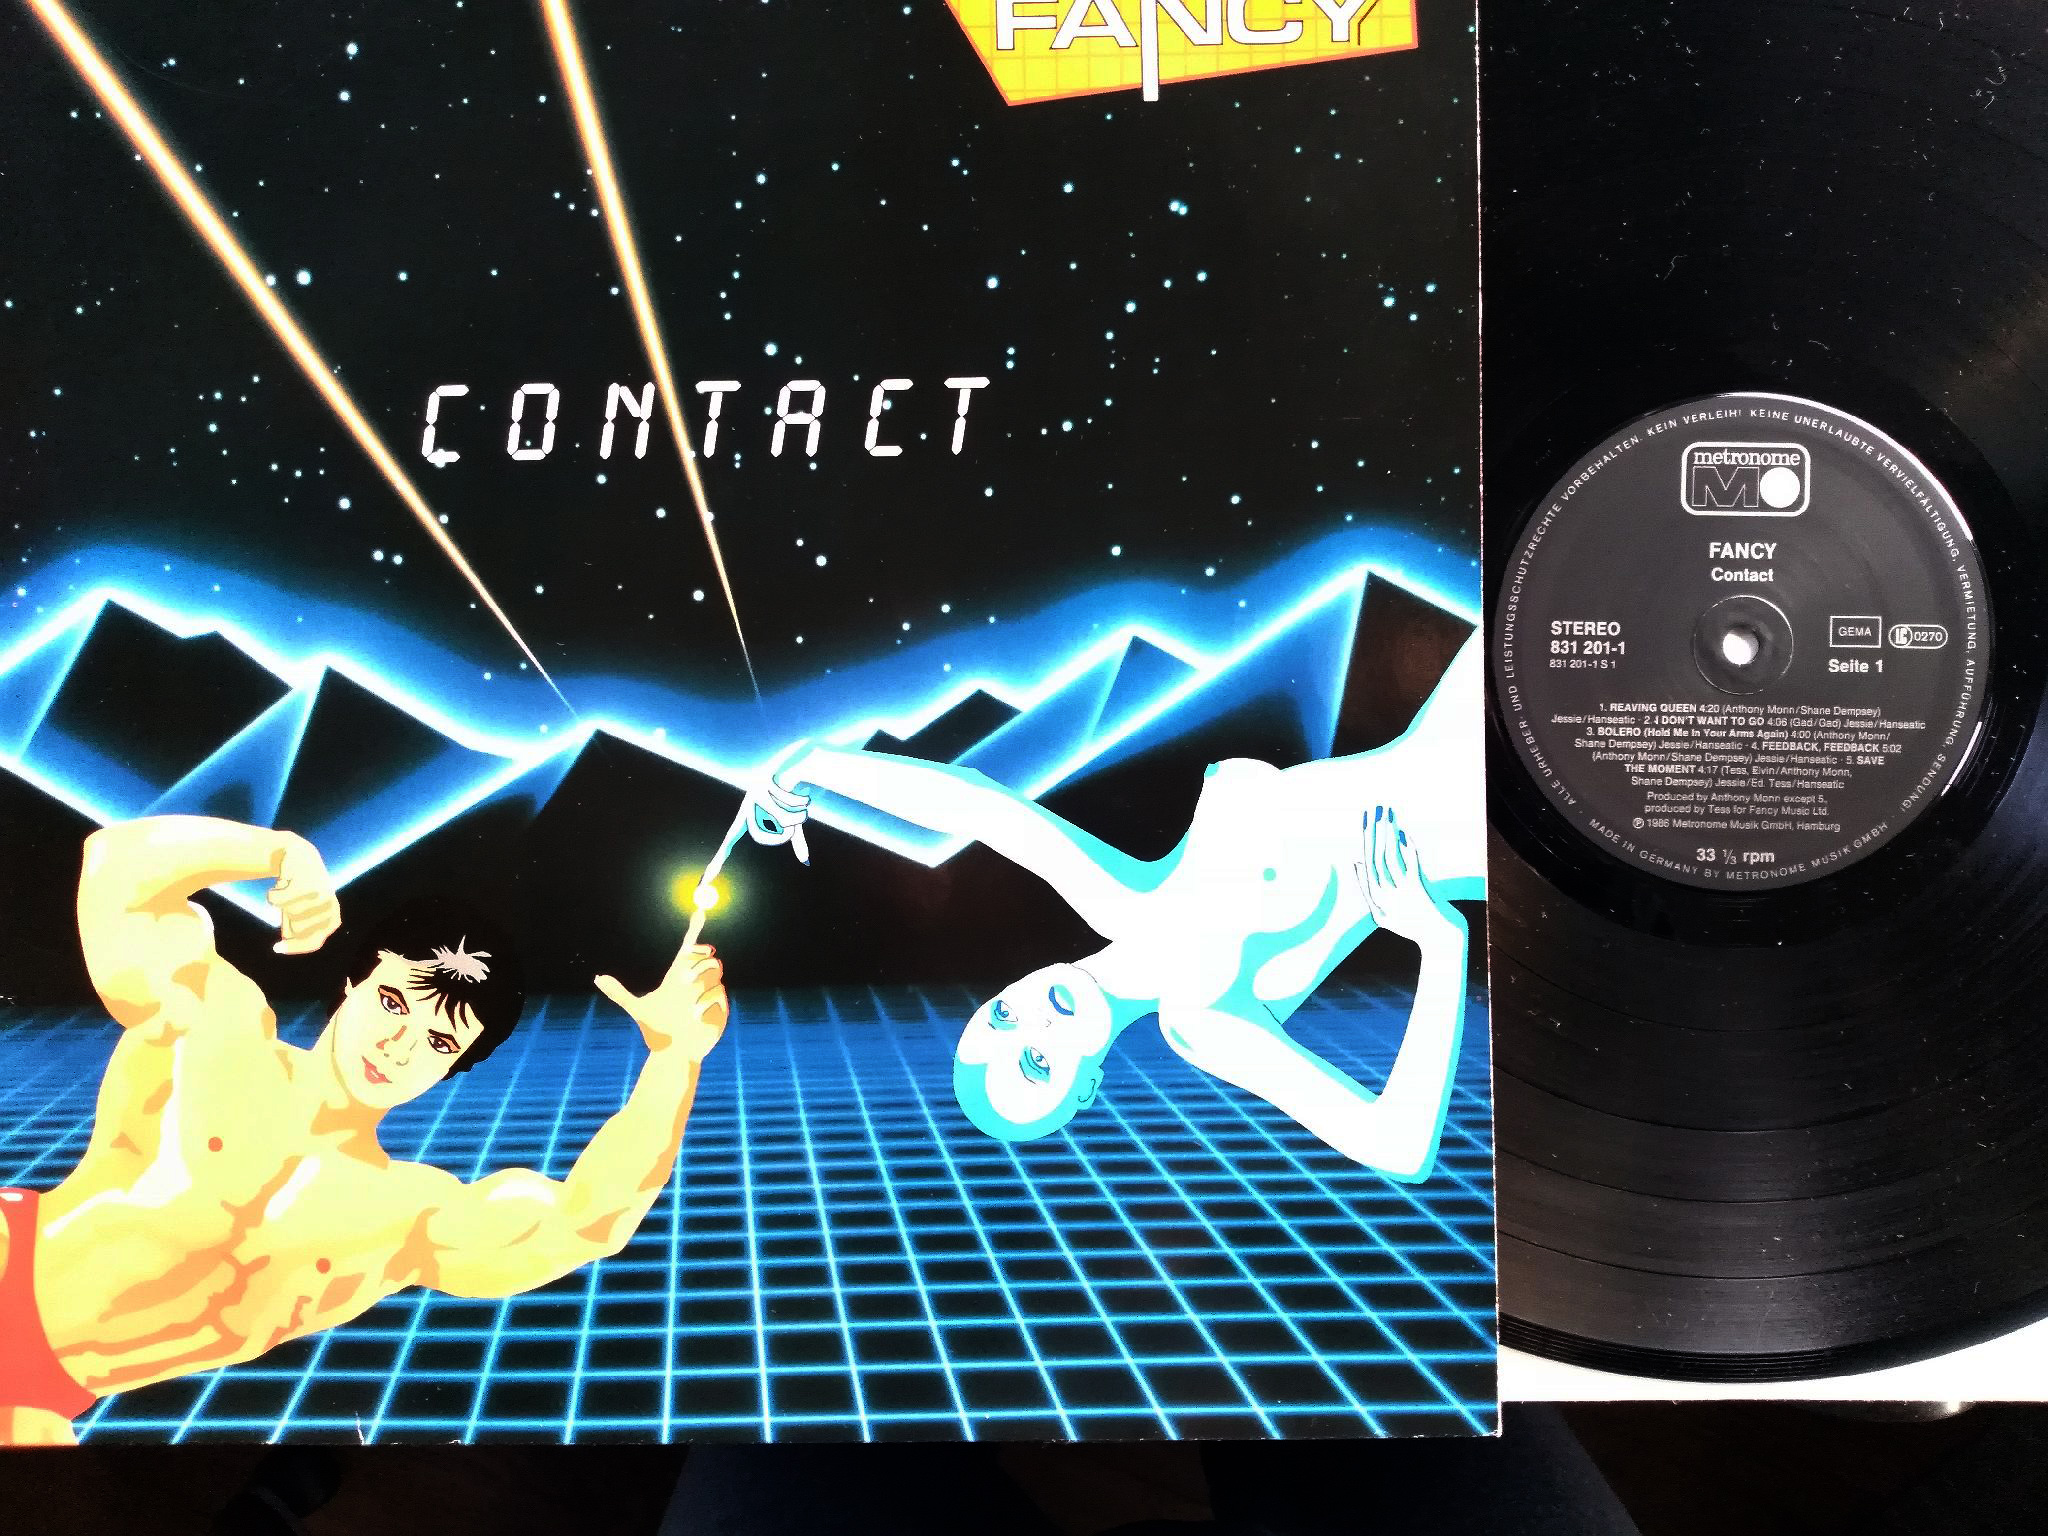 Fancy - Contact (LP)